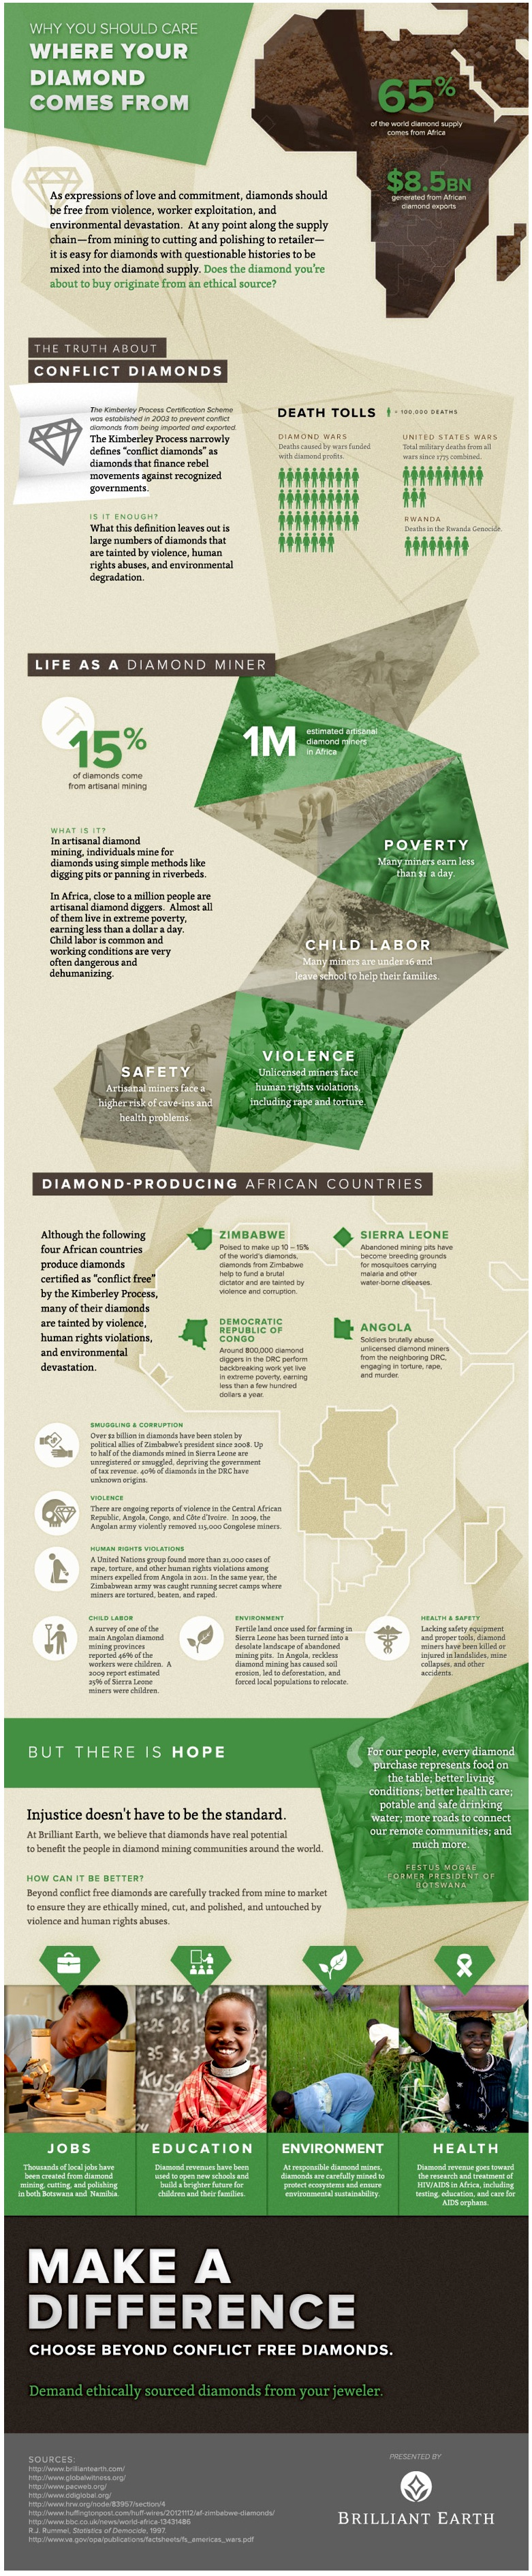 infographic-the-truth-about-conflict-diamonds